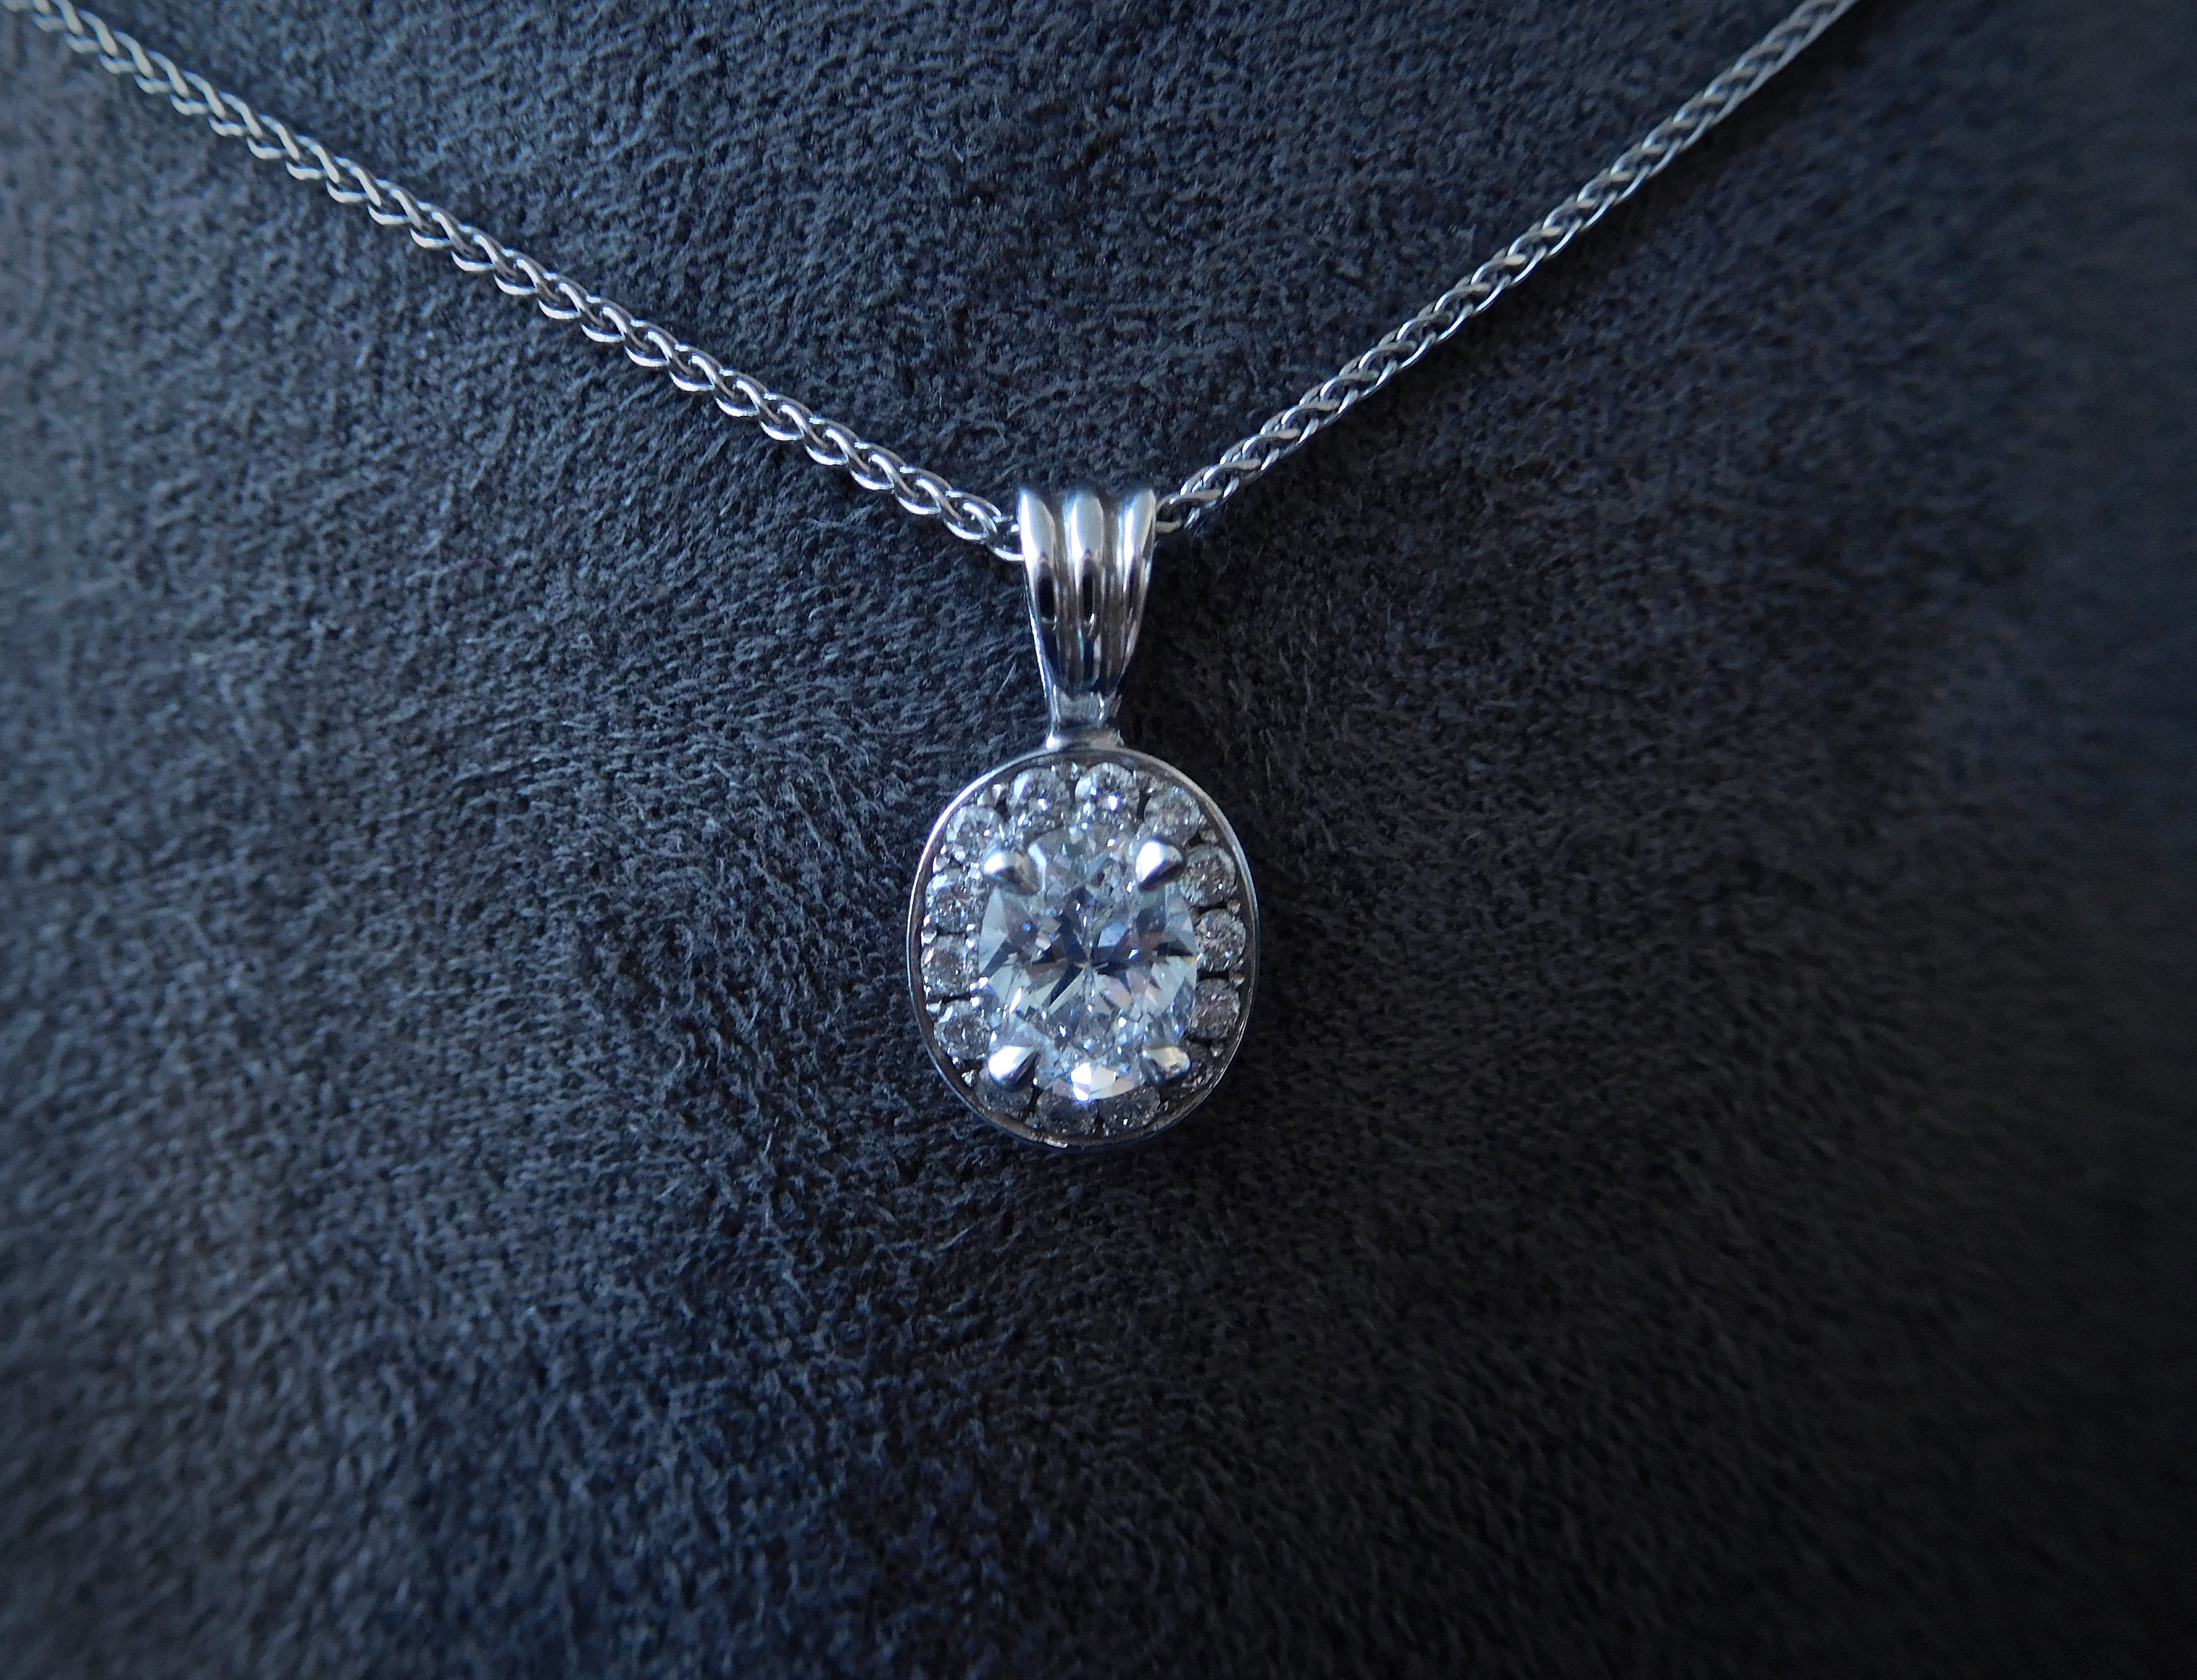 Platinum & Oval Cut Diamond Pendant, Oval Cut Diamond Halo Pendant With Regard To Most Recent Oval Sparkle Halo Pendant Necklaces (View 18 of 25)